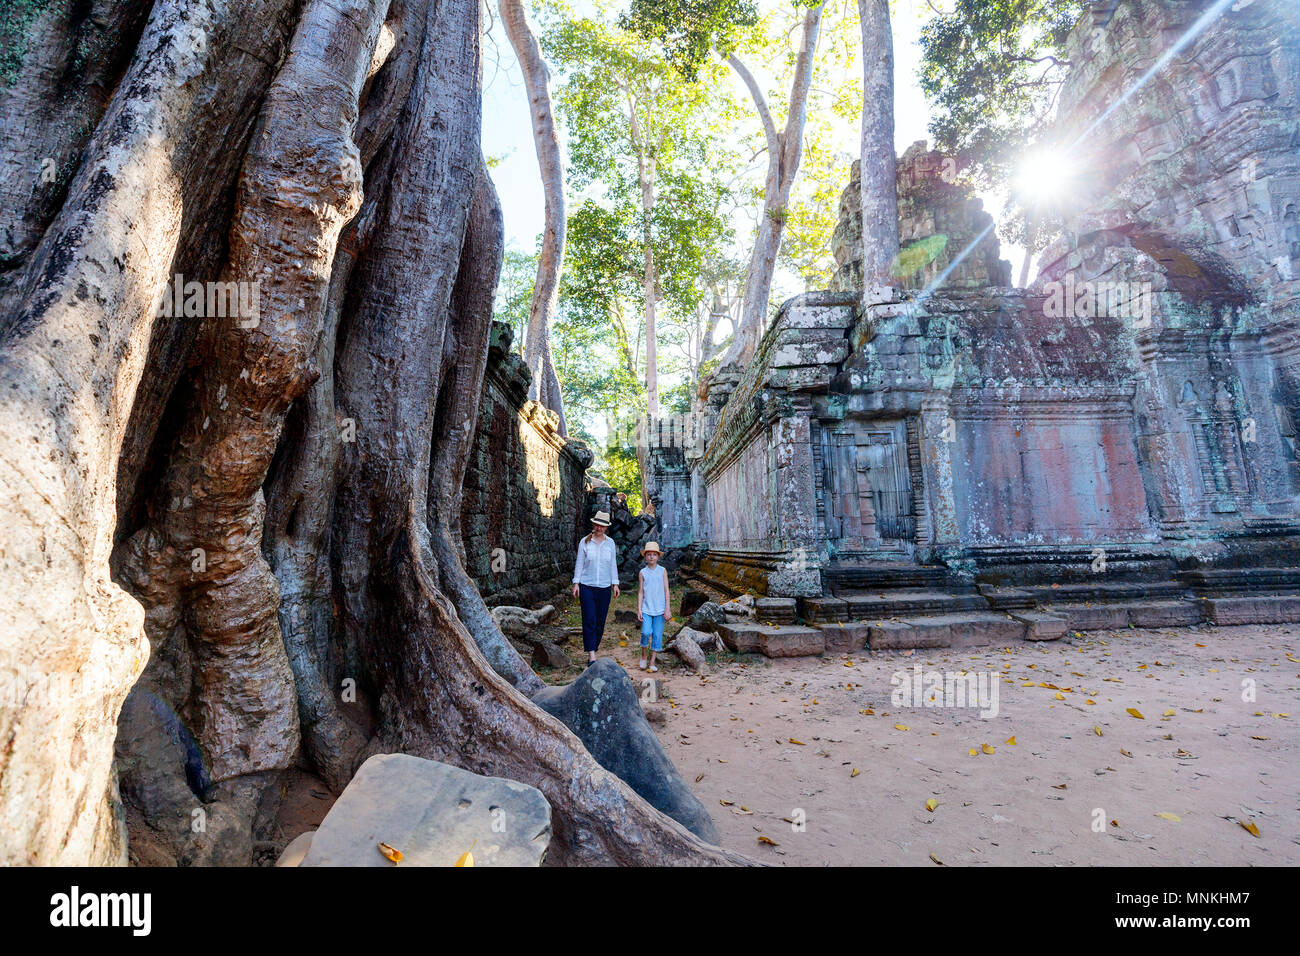 Family visiting ancient Ta Prohm temple in Angkor Archaeological area in Cambodia - Stock Image